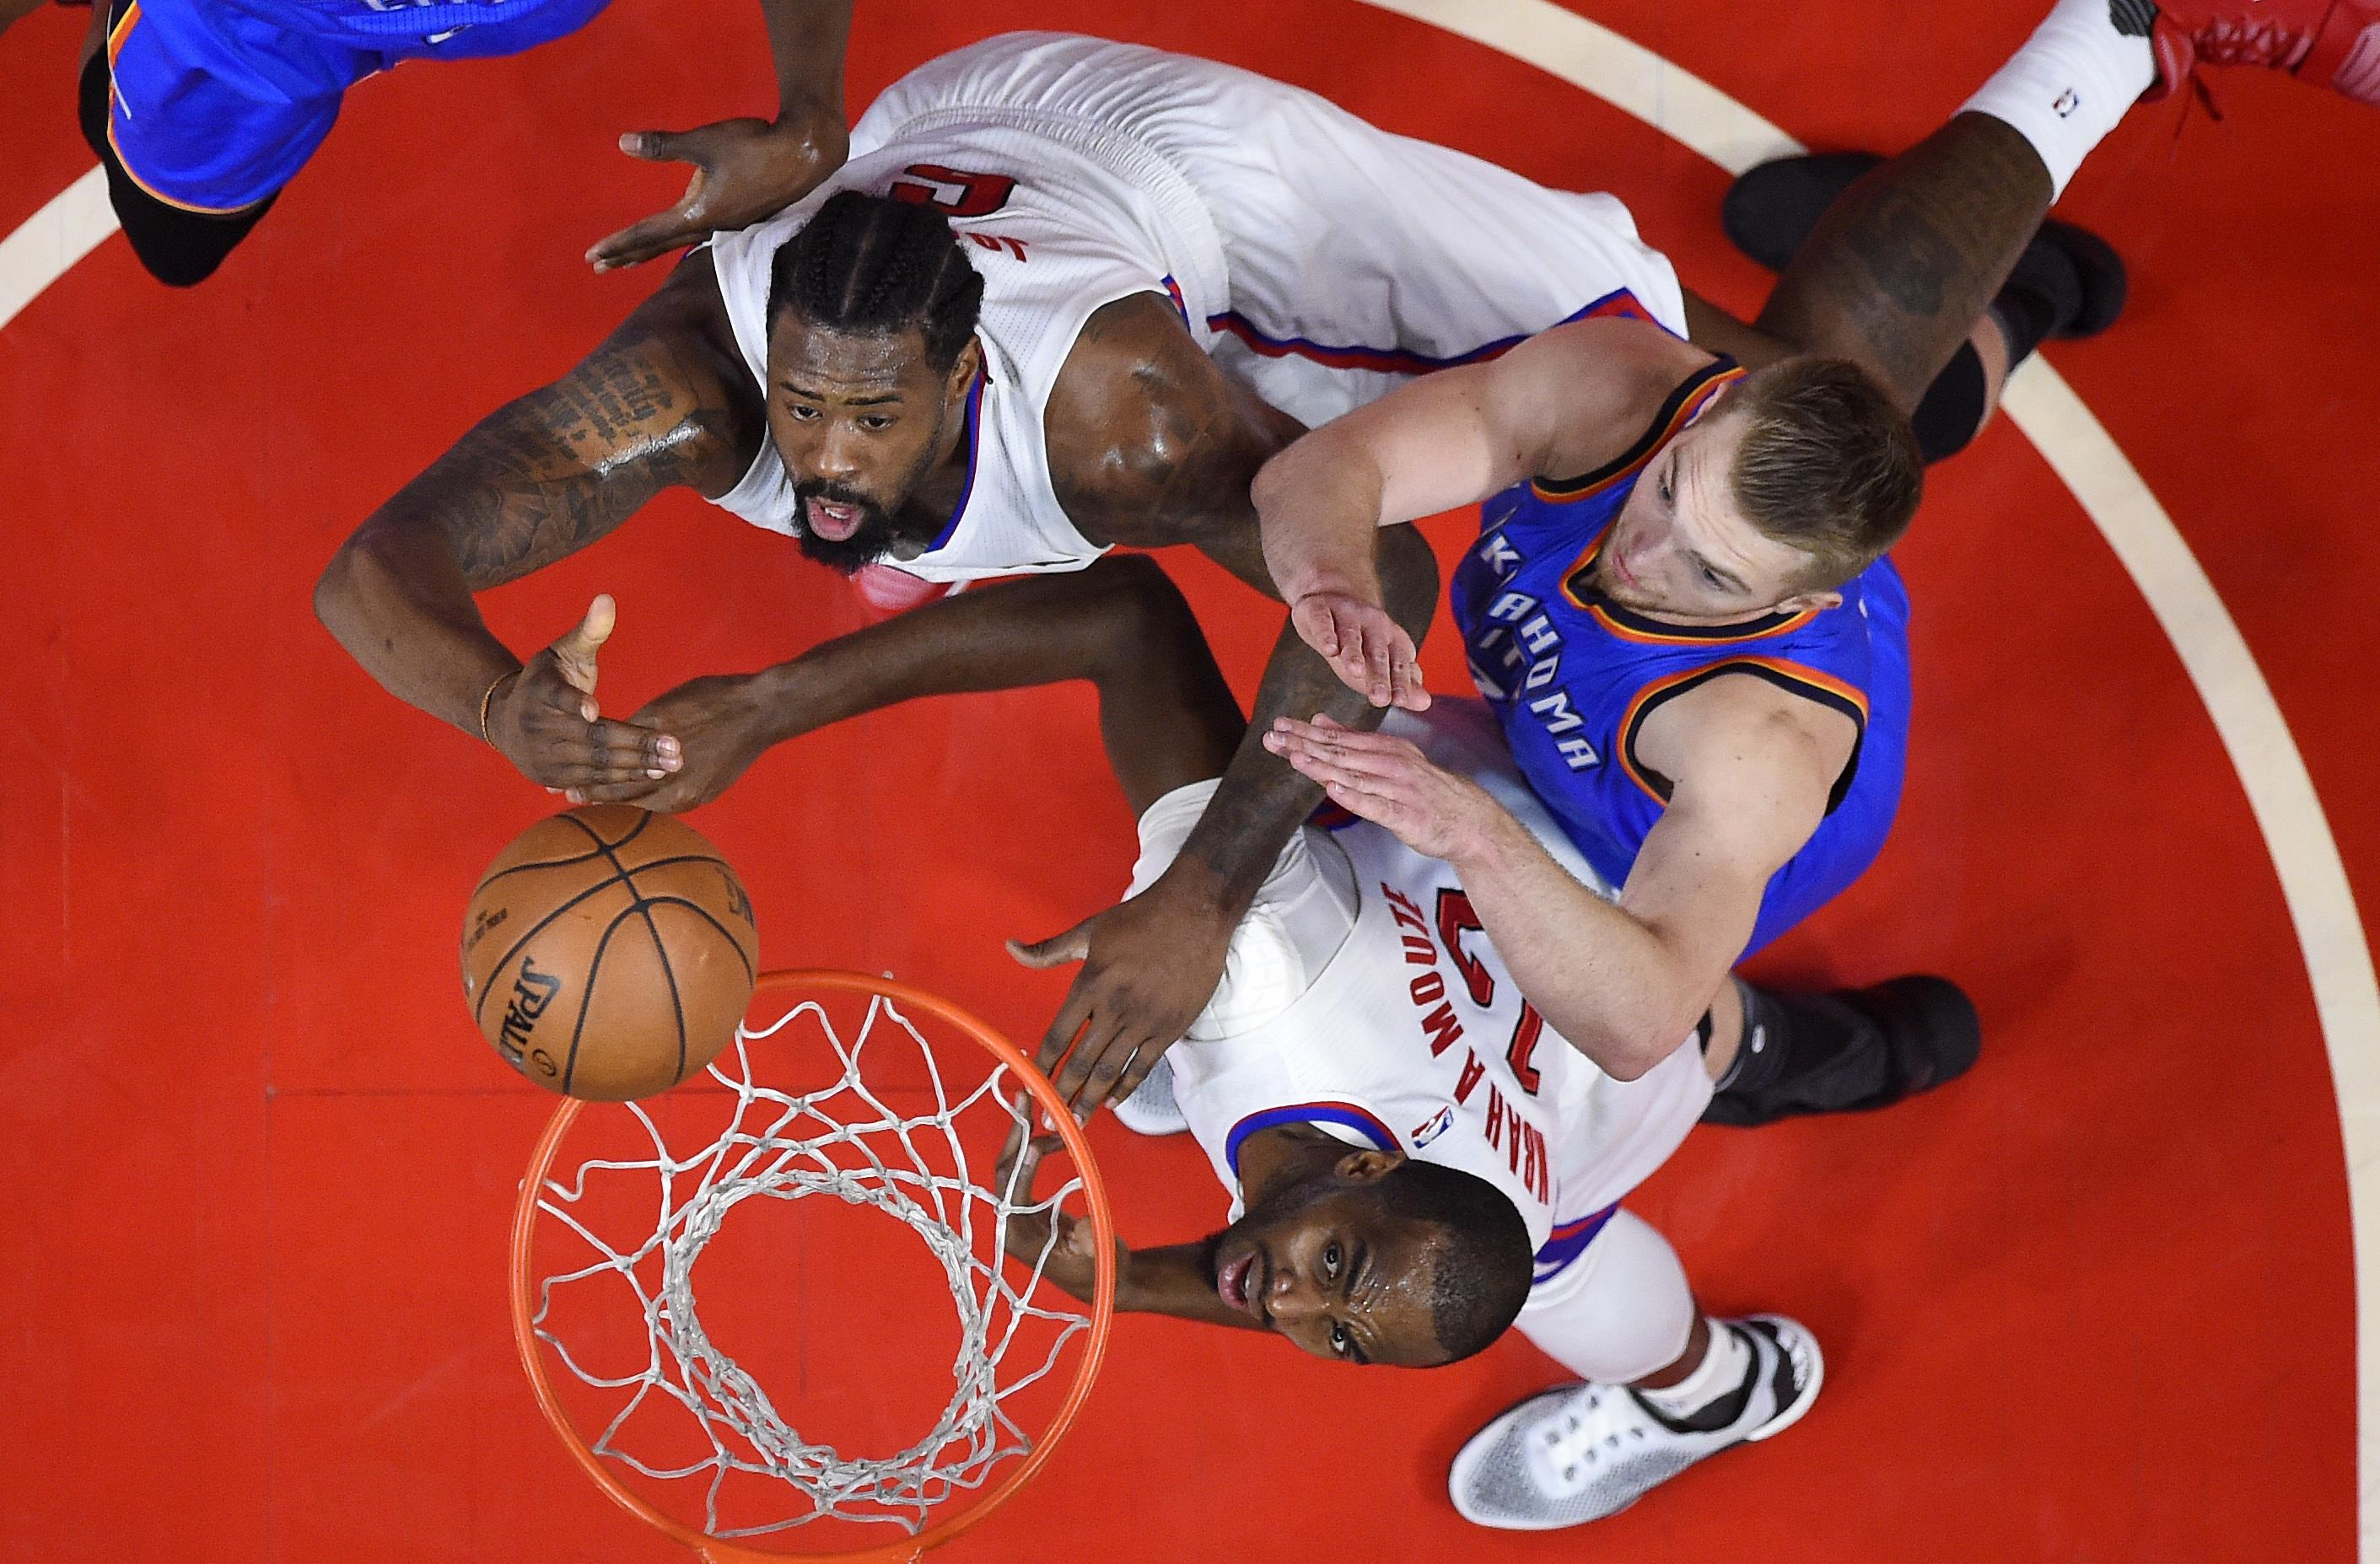 Thunder_clippers_basketball_43405